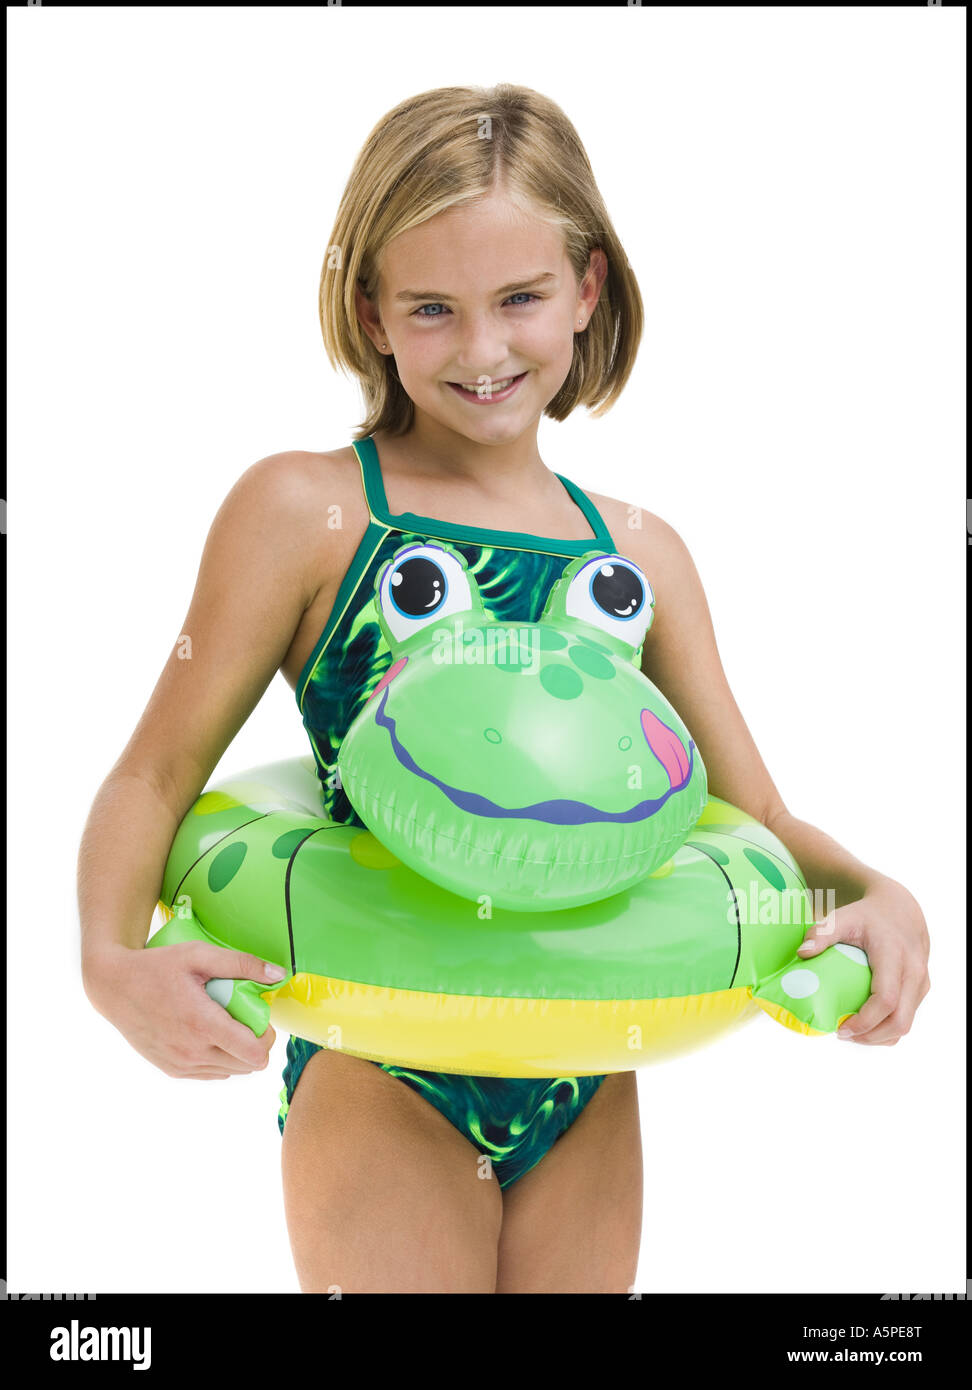 Girl in bathing suit with swim ring Stock Photo